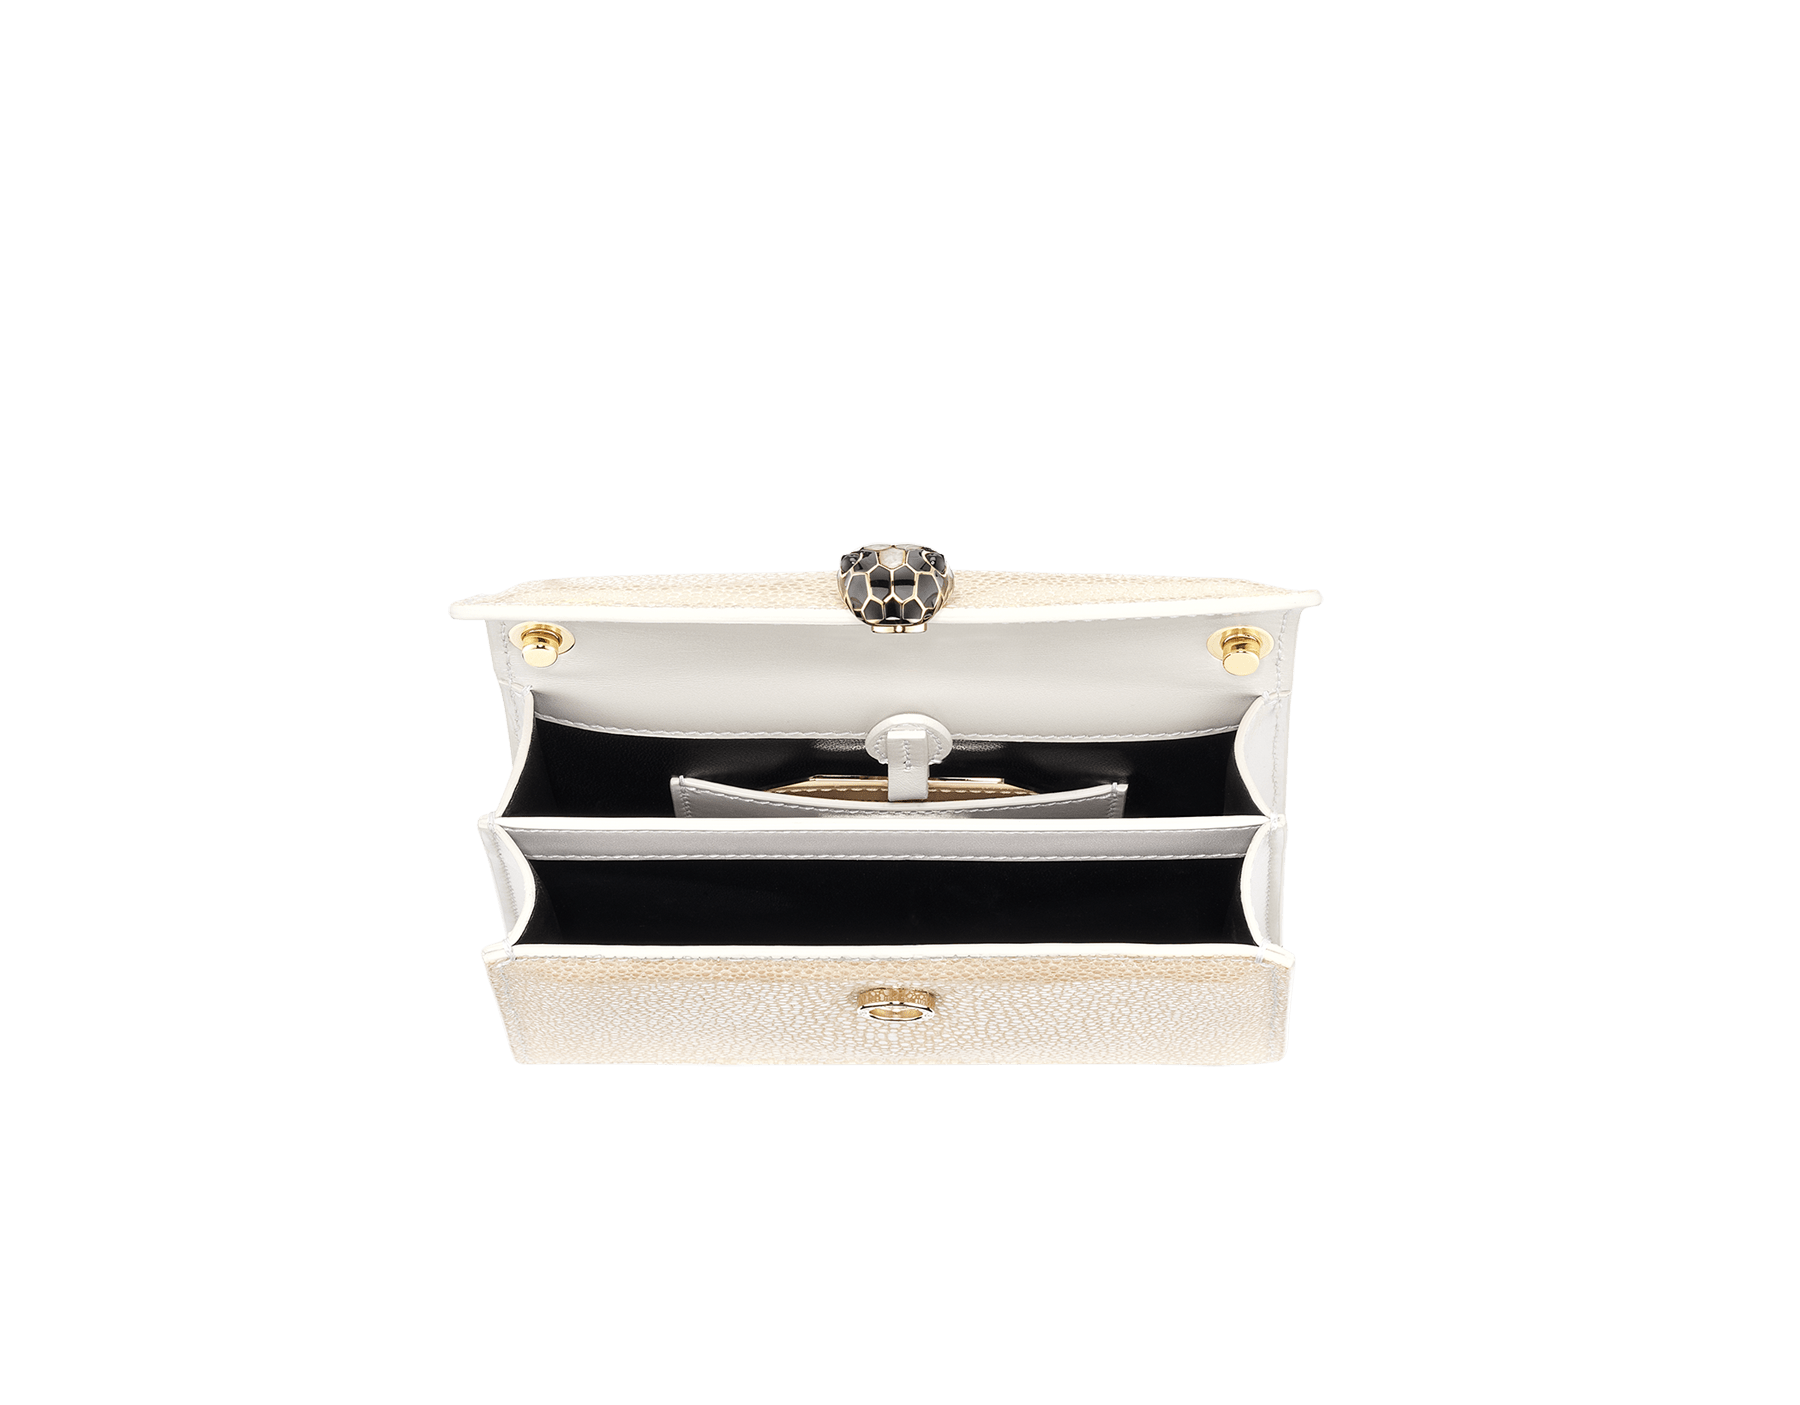 """Serpenti Forever"" mini crossbody bag in pearly, iridescent Milky Opal beige galuchat skin with agate-white calfskin edges and black nappa leather inner lining. Alluring snakehead closure in light gold-plated brass enriched with black and pearly, agate-white enamel and black onyx eyes. 289938 image 2"